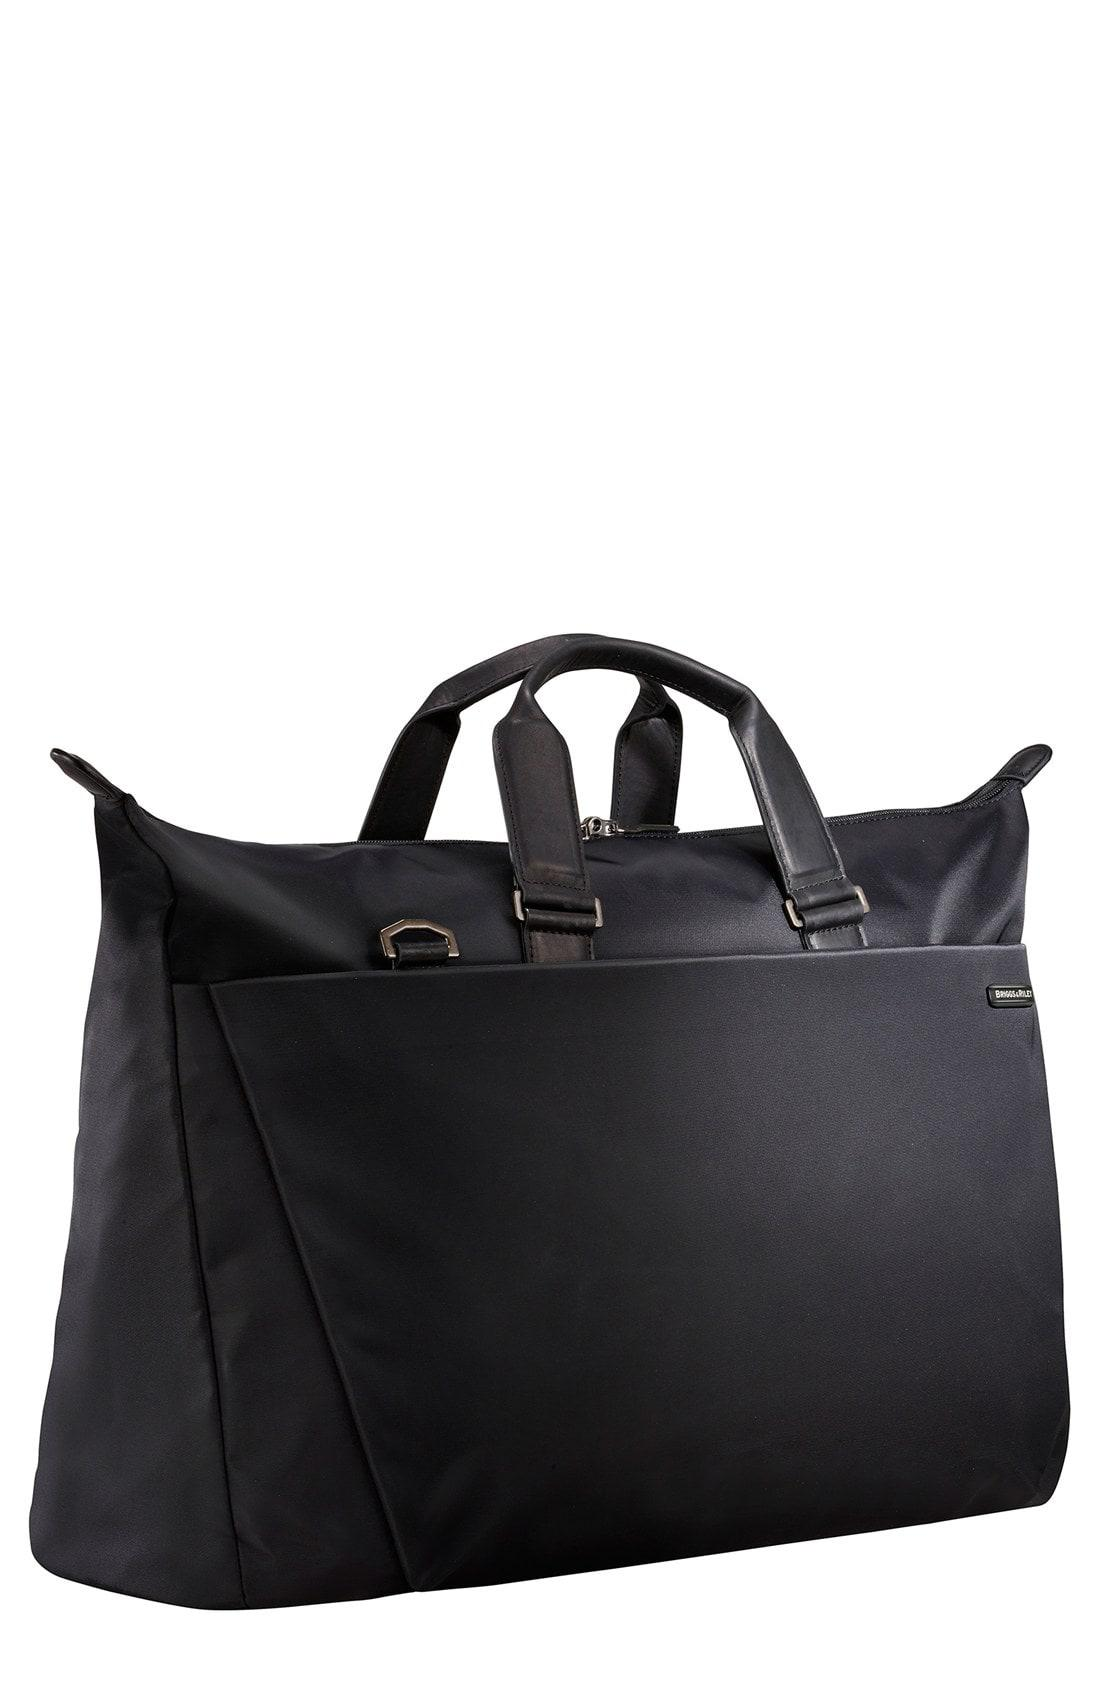 8bc4ef1be6 Briggs   Riley. Women s Black Sympatico 22-inch Duffel Bag -.  239  191  From Nordstrom. Free shipping ...